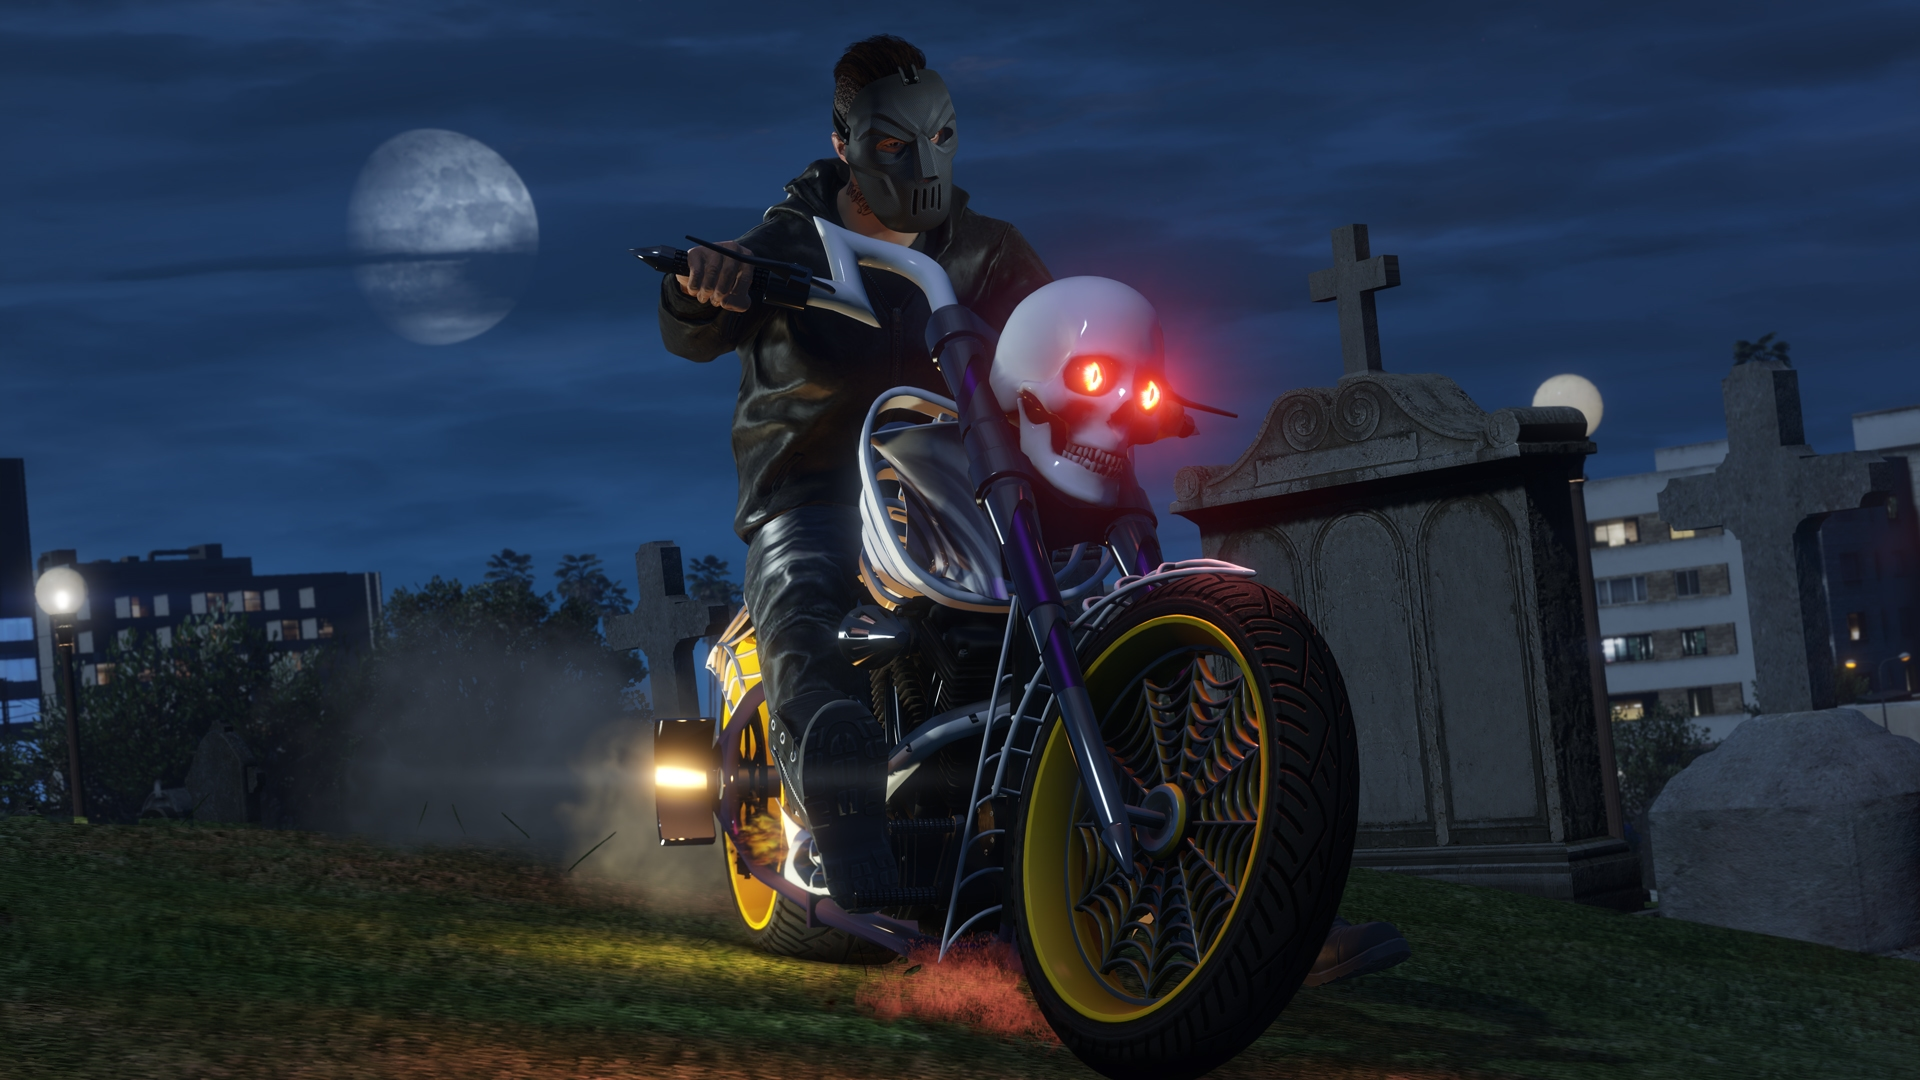 Gta Online Halloween Specials Anniversary Bonuses New Vehicles Bundle 10pcs Steam Wallet Idr 400000 More